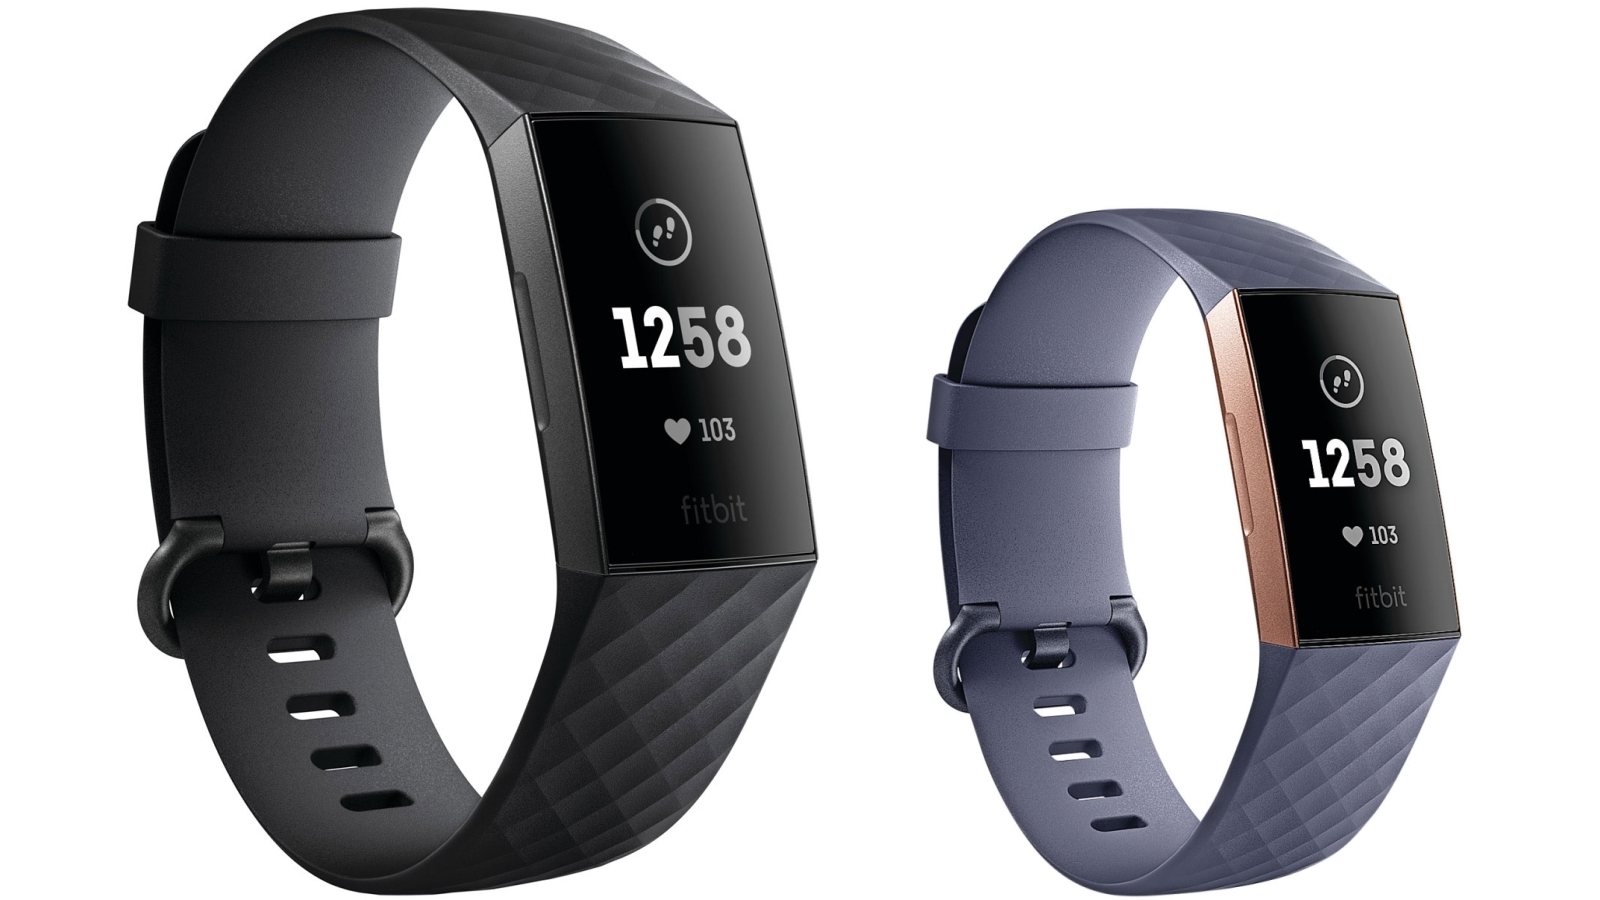 Buy Fitbit Charge 3 Fitness Tracker | Harvey Norman AU